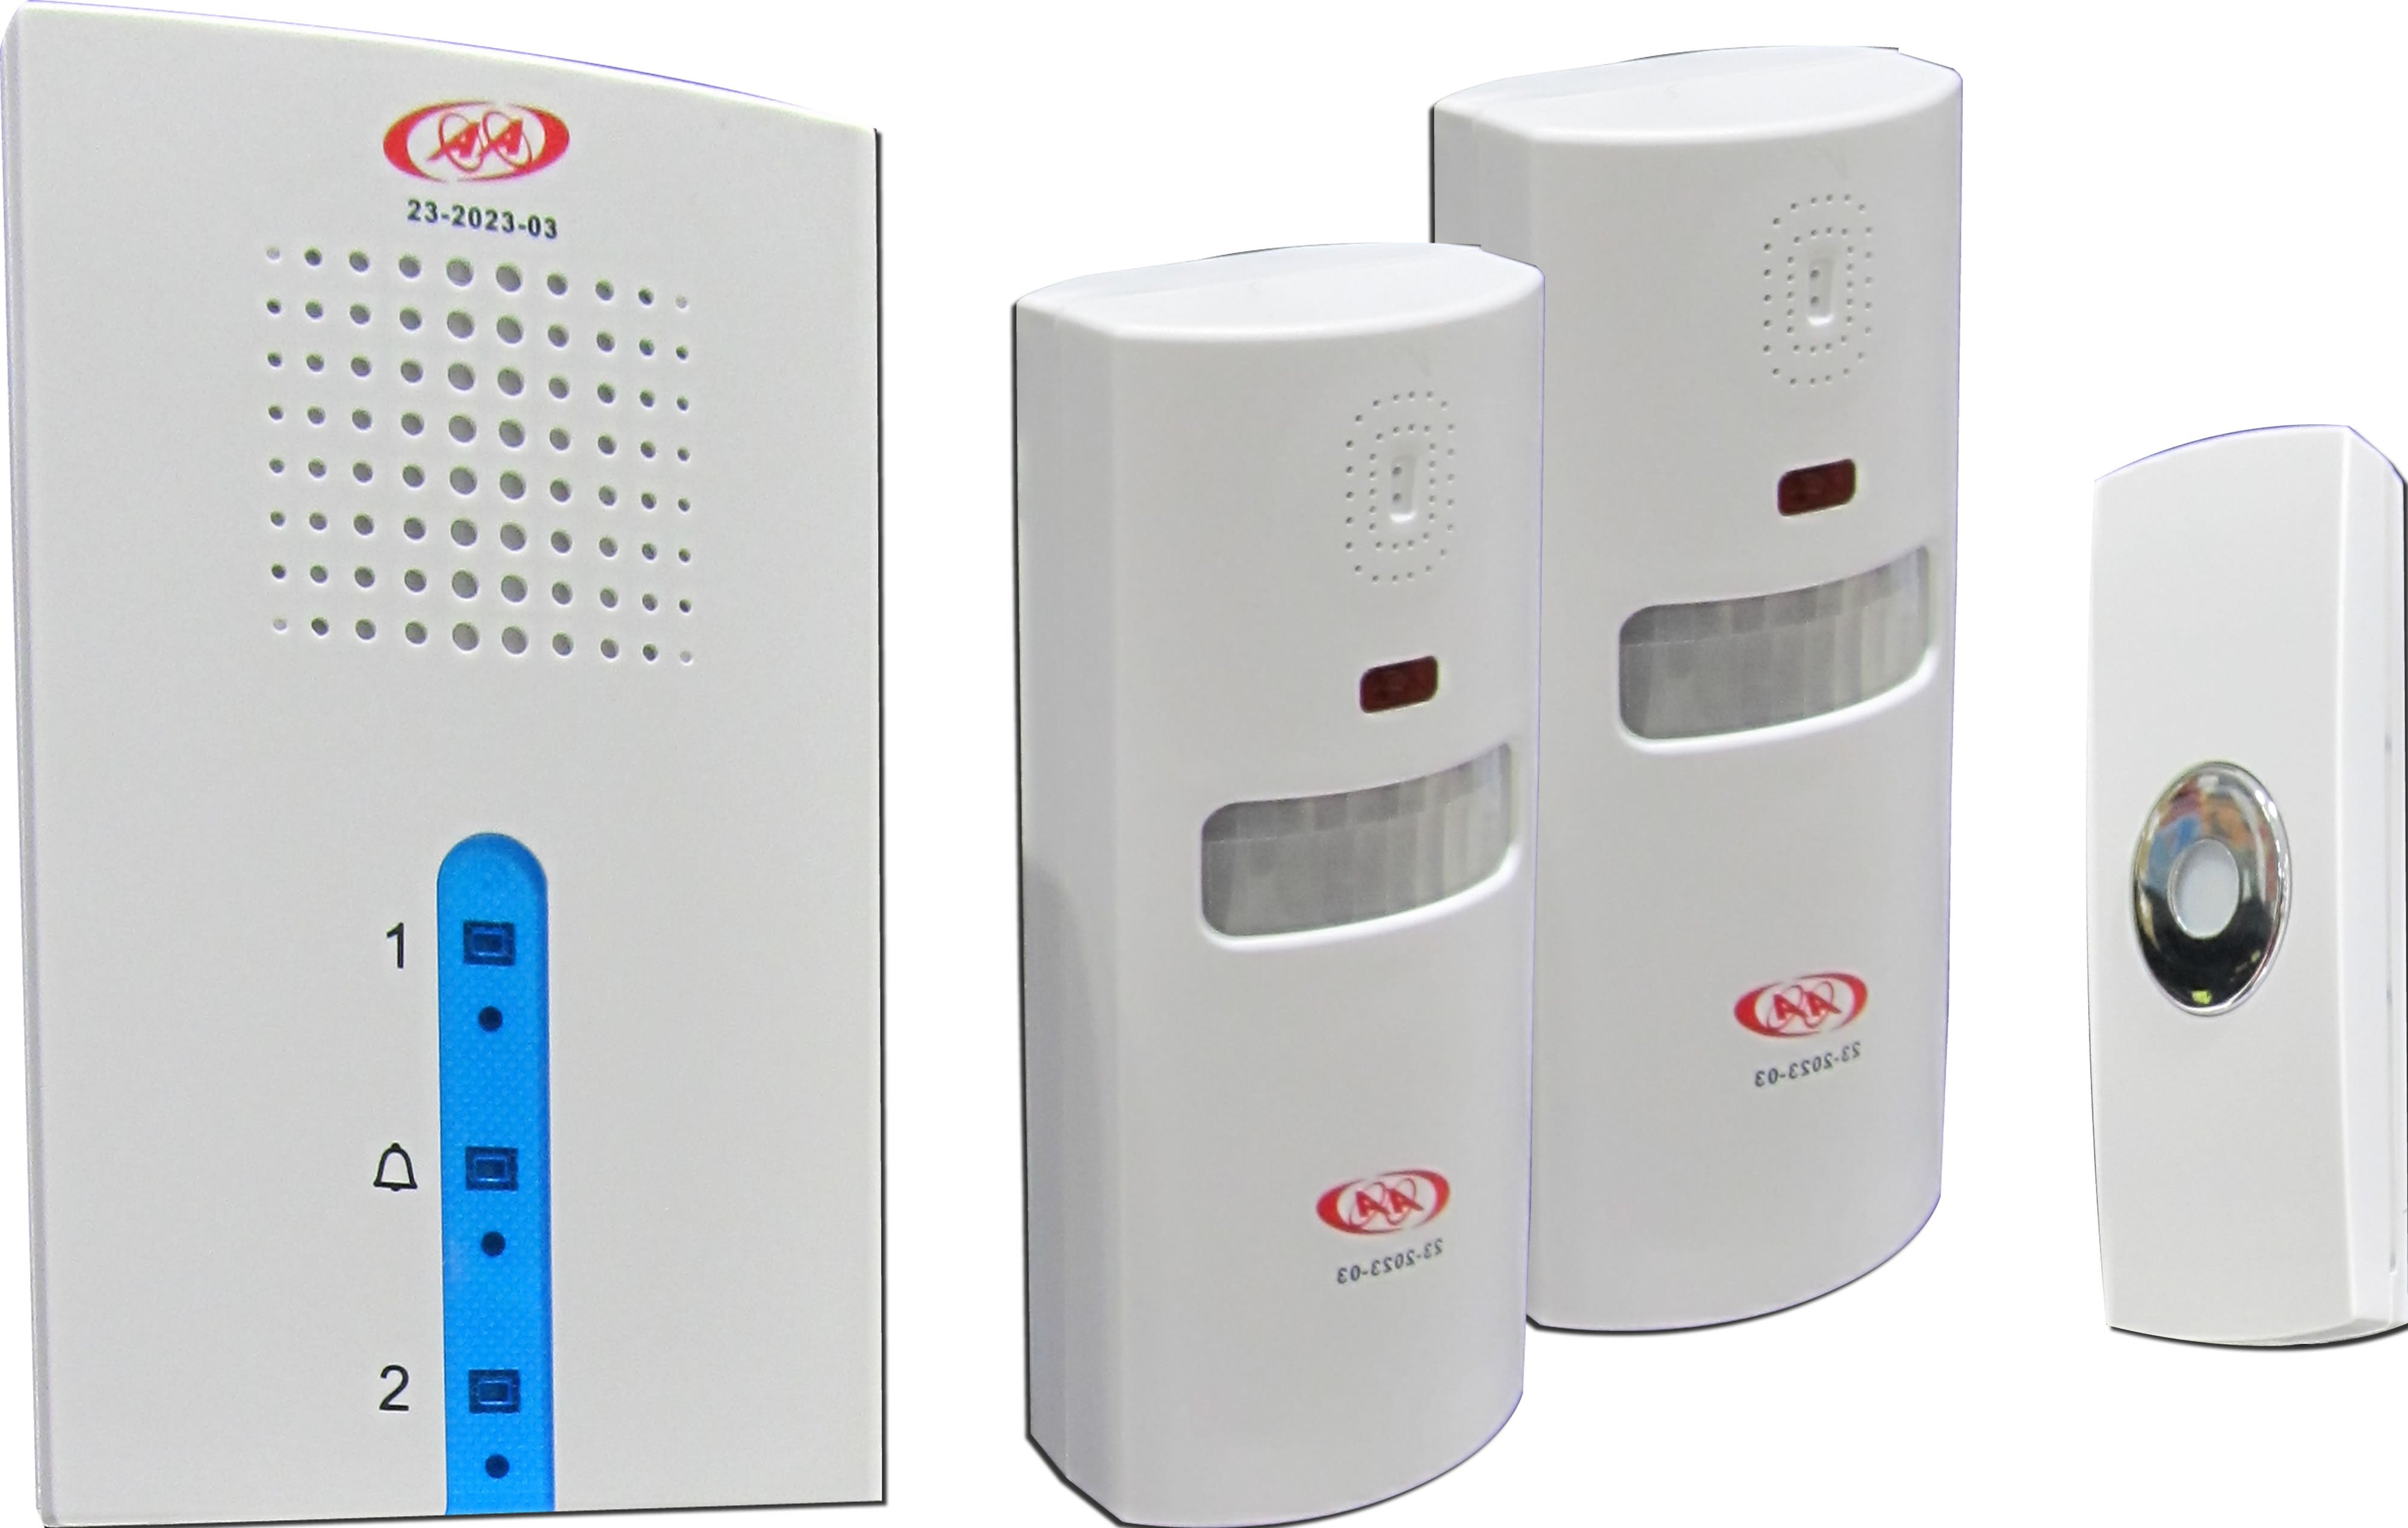 23-2023-03 Infrared Alarm Wireless Doorbell Kit - 1*Receiver, 1*Remote & 2*Infrared Sensor